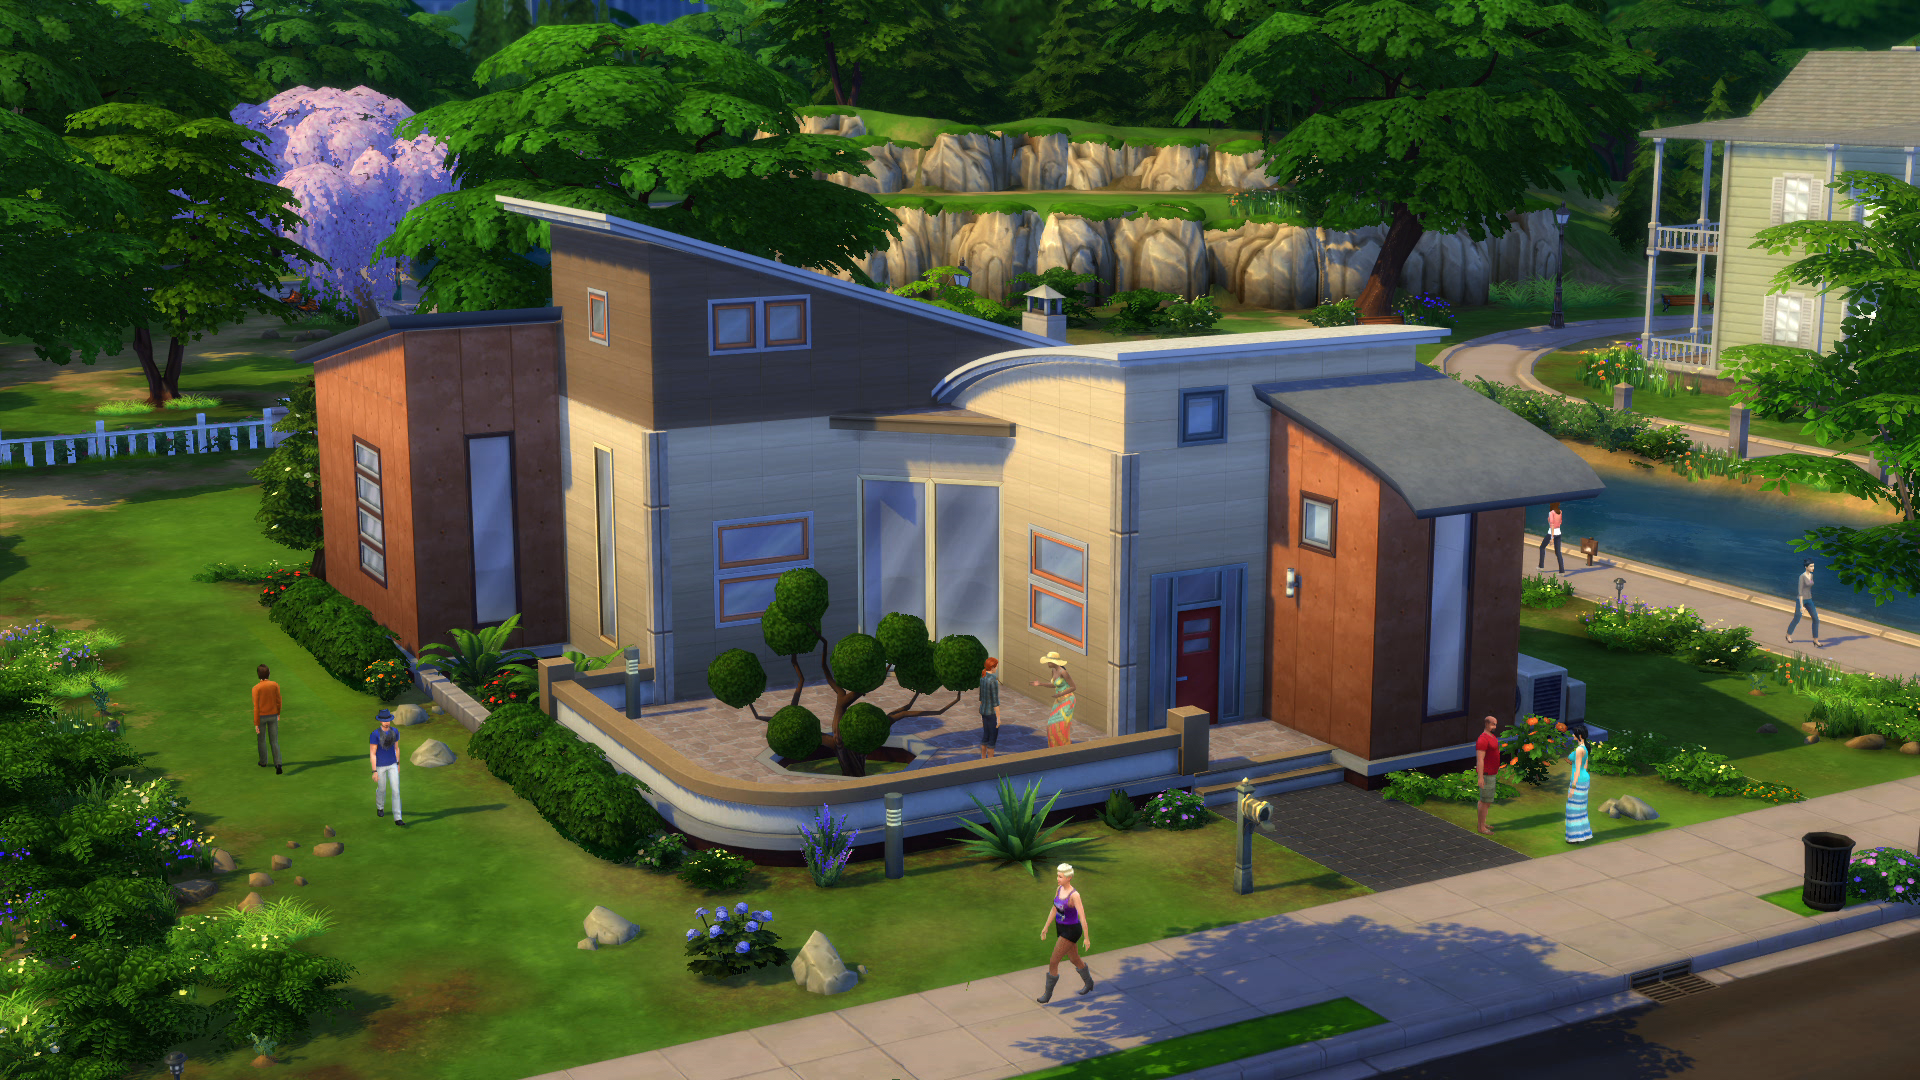 The sims 4 build mode move entire buildings with just a click simcitizens Create a house game